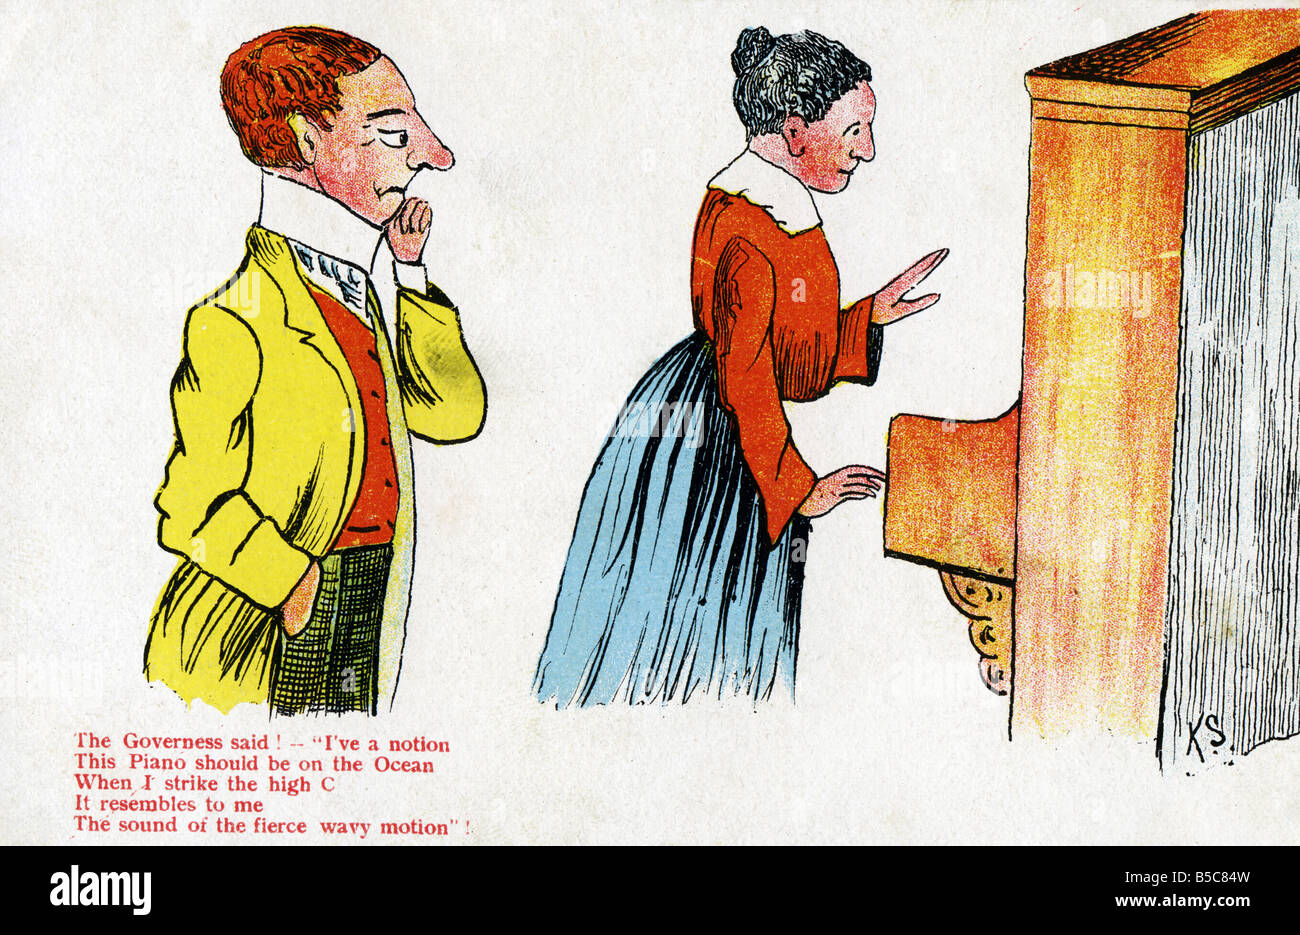 1900s Edwardian Comic Art Postcard EDITORIAL USE ONLY Stock Photo